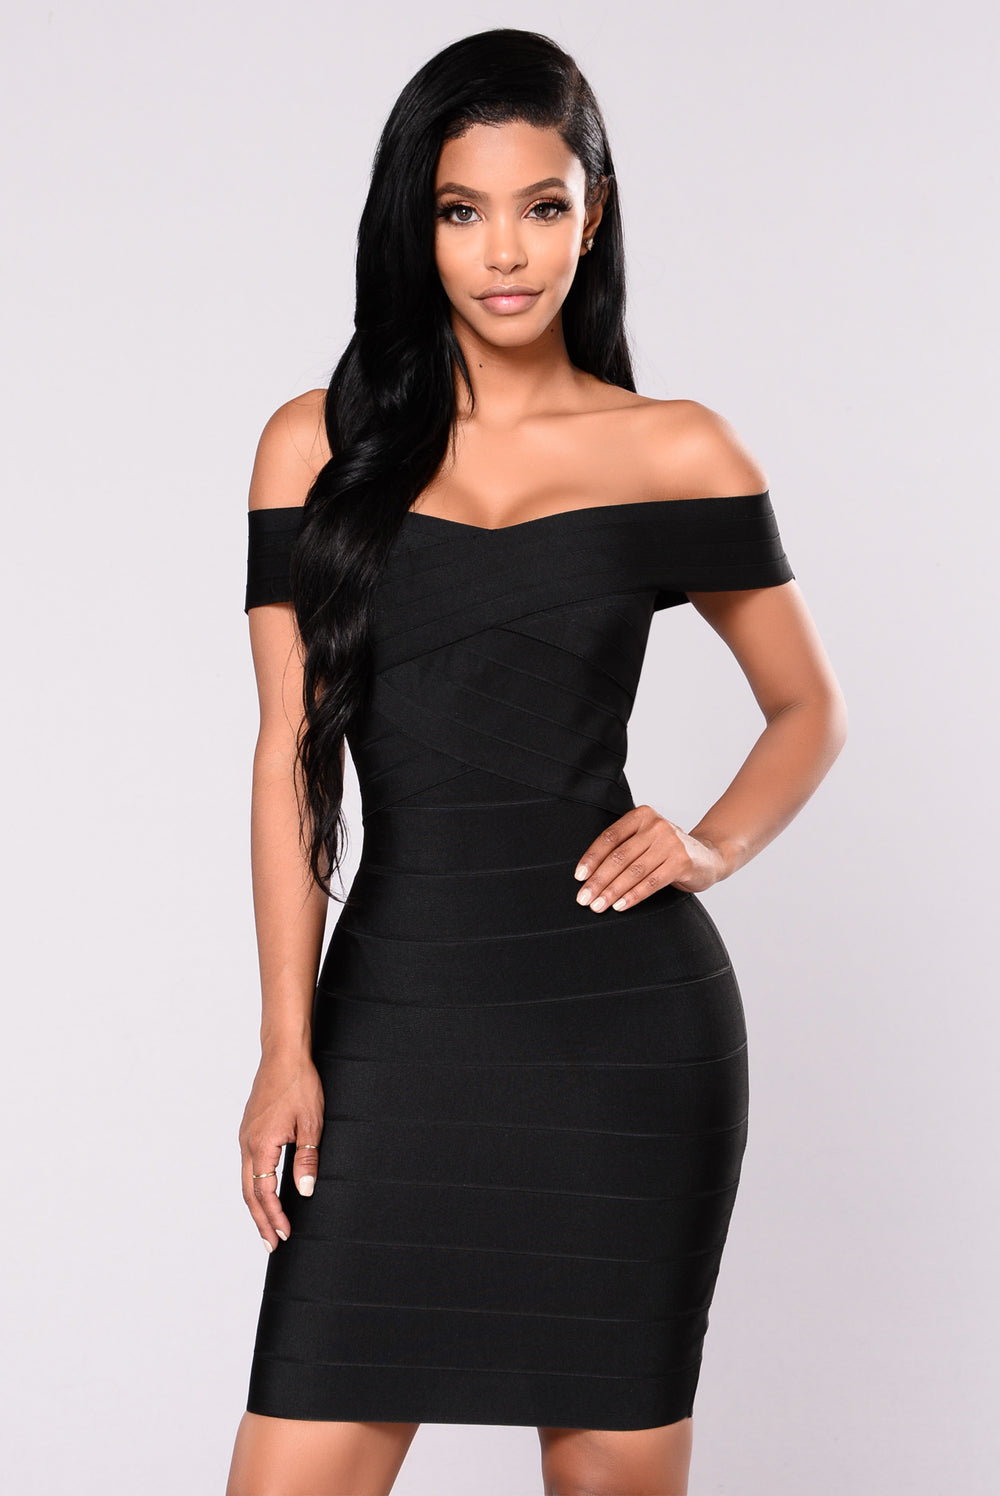 Cross My Body Dress - Black